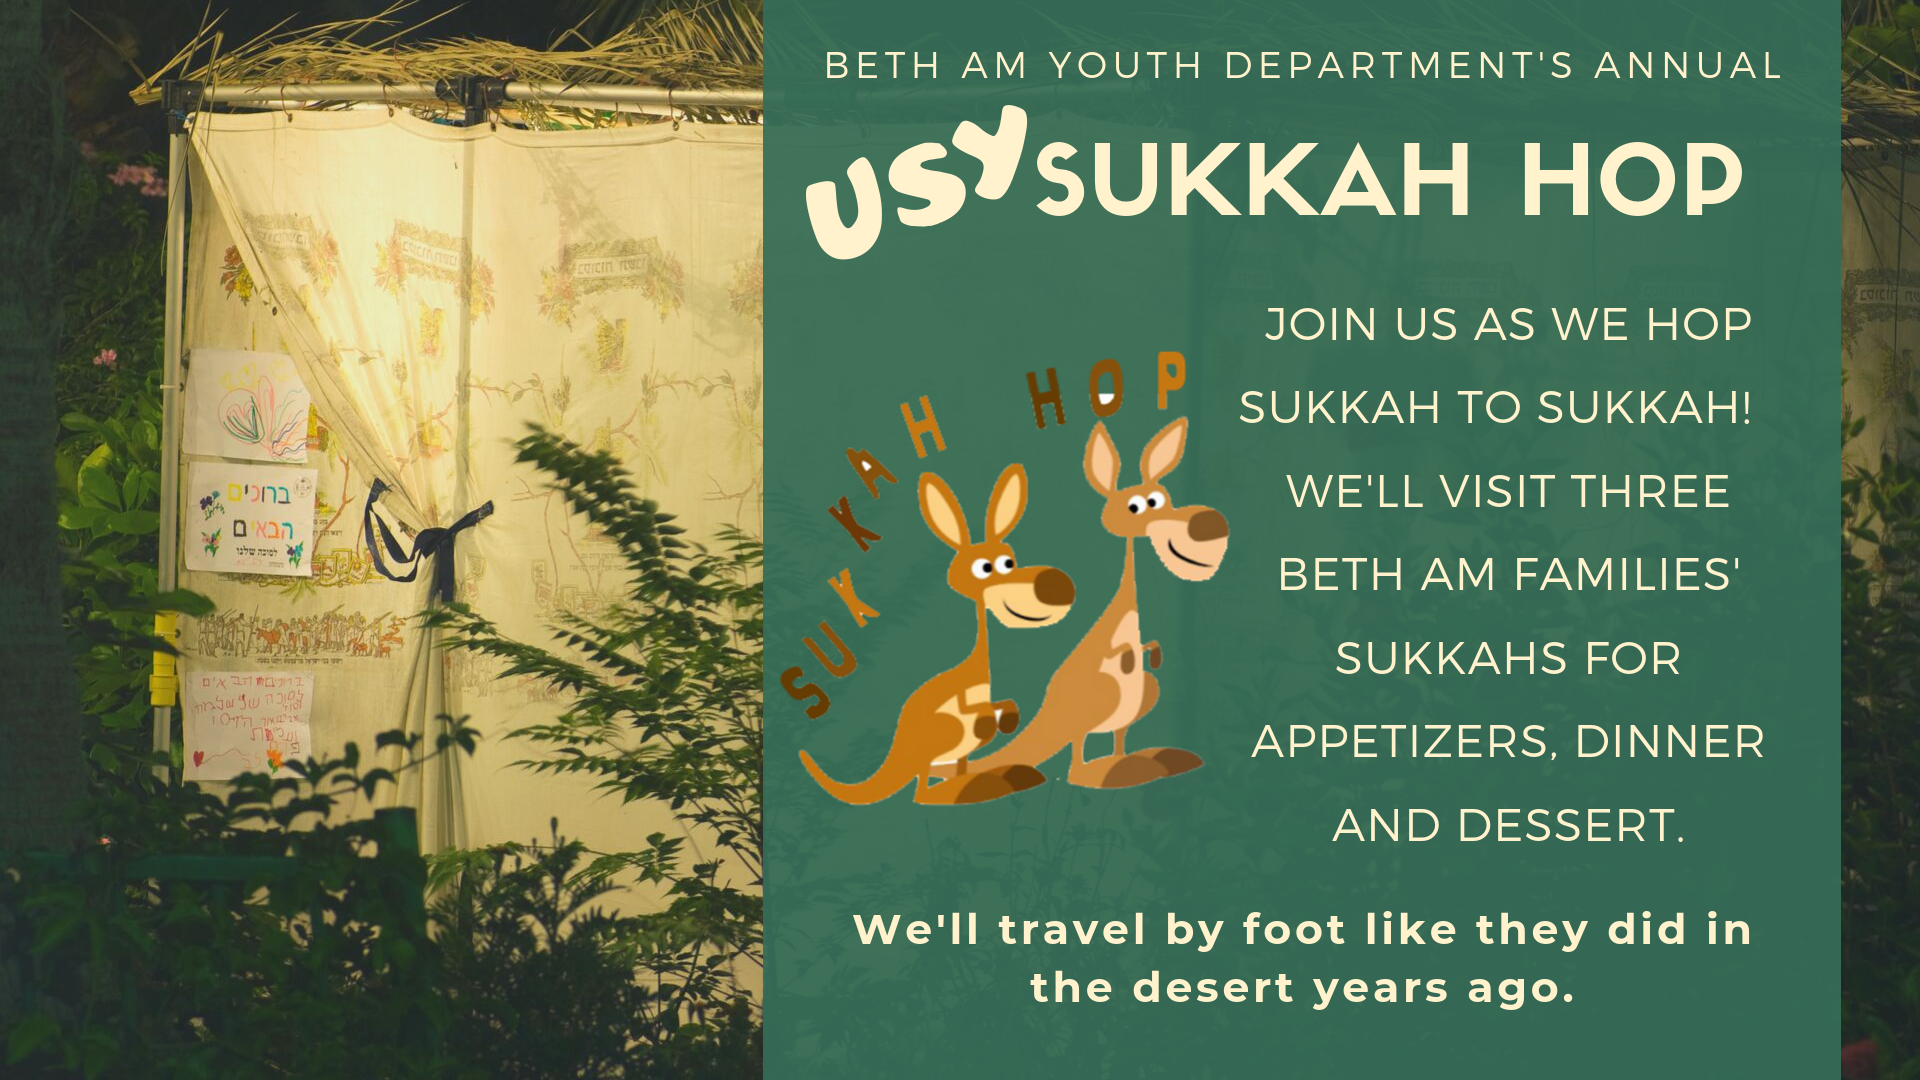 Banner Image for USY Sukkah Hop